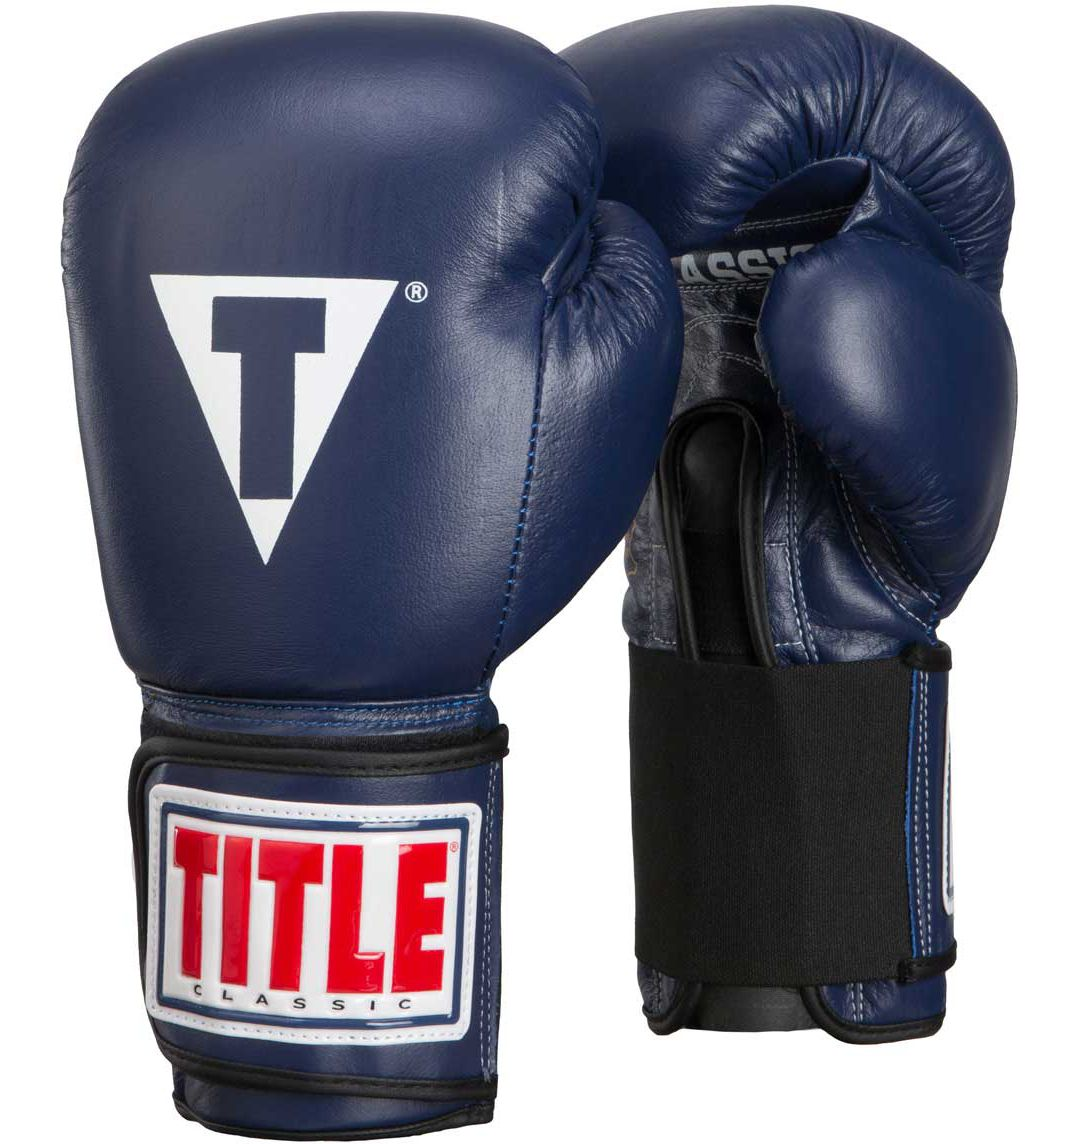 14cff800a61 TITLE Boxing Classic Leather Elastic Training Gloves | DICK'S ...